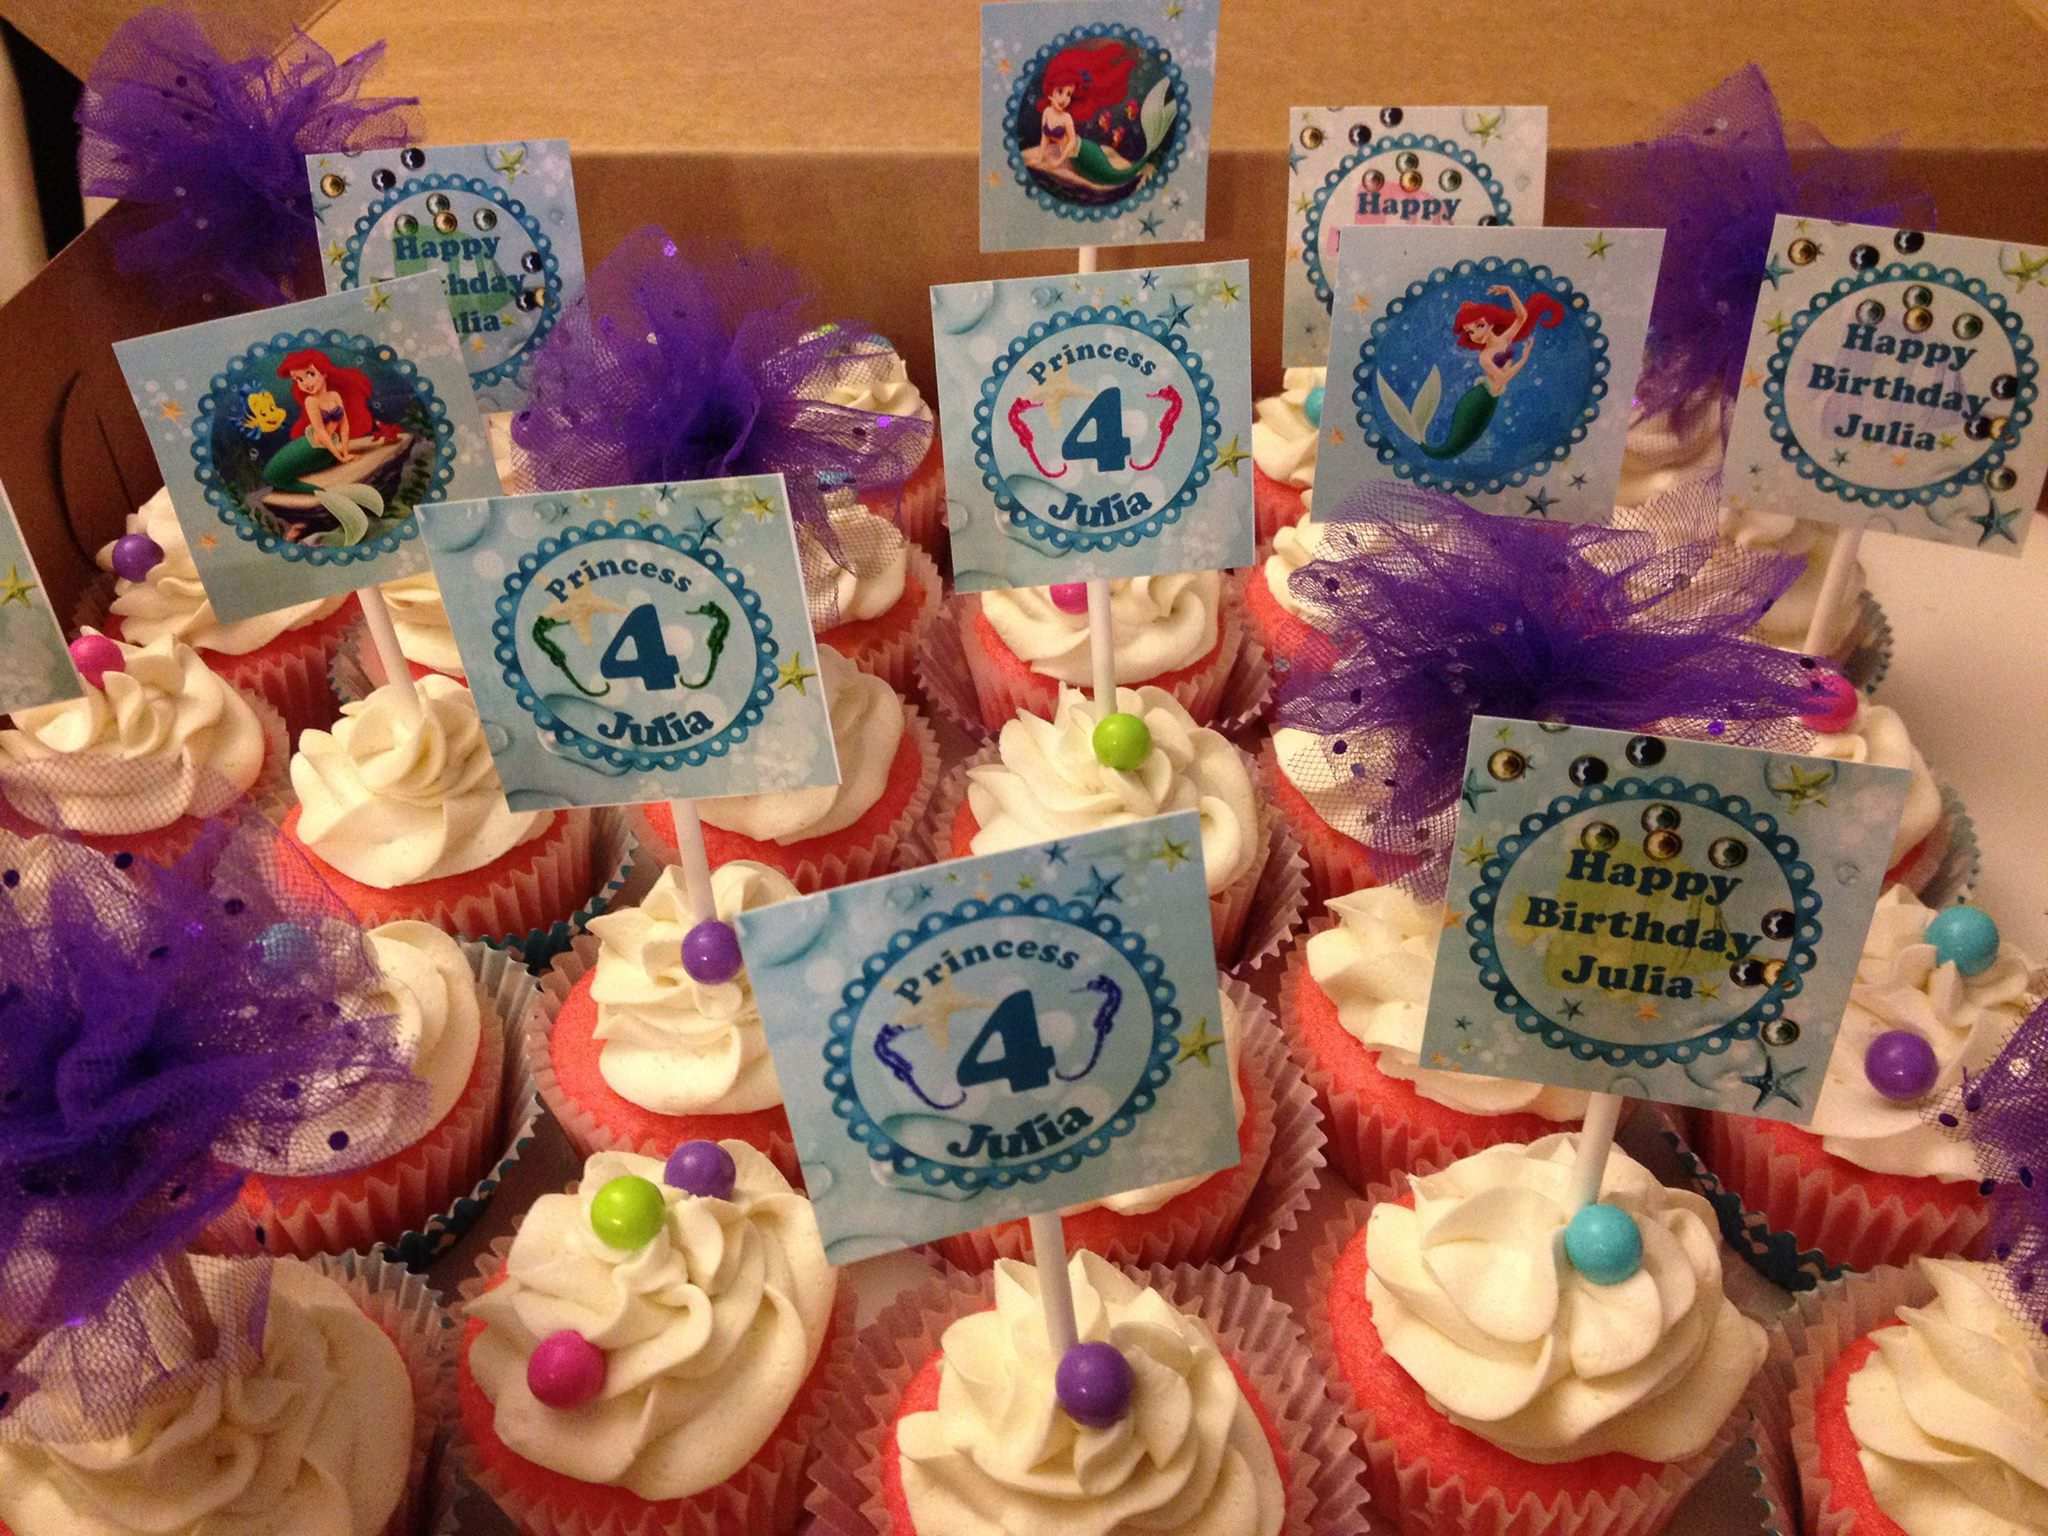 Disney Princess Ariel The Little Mermaid Cupcakes with Picks and Tulle